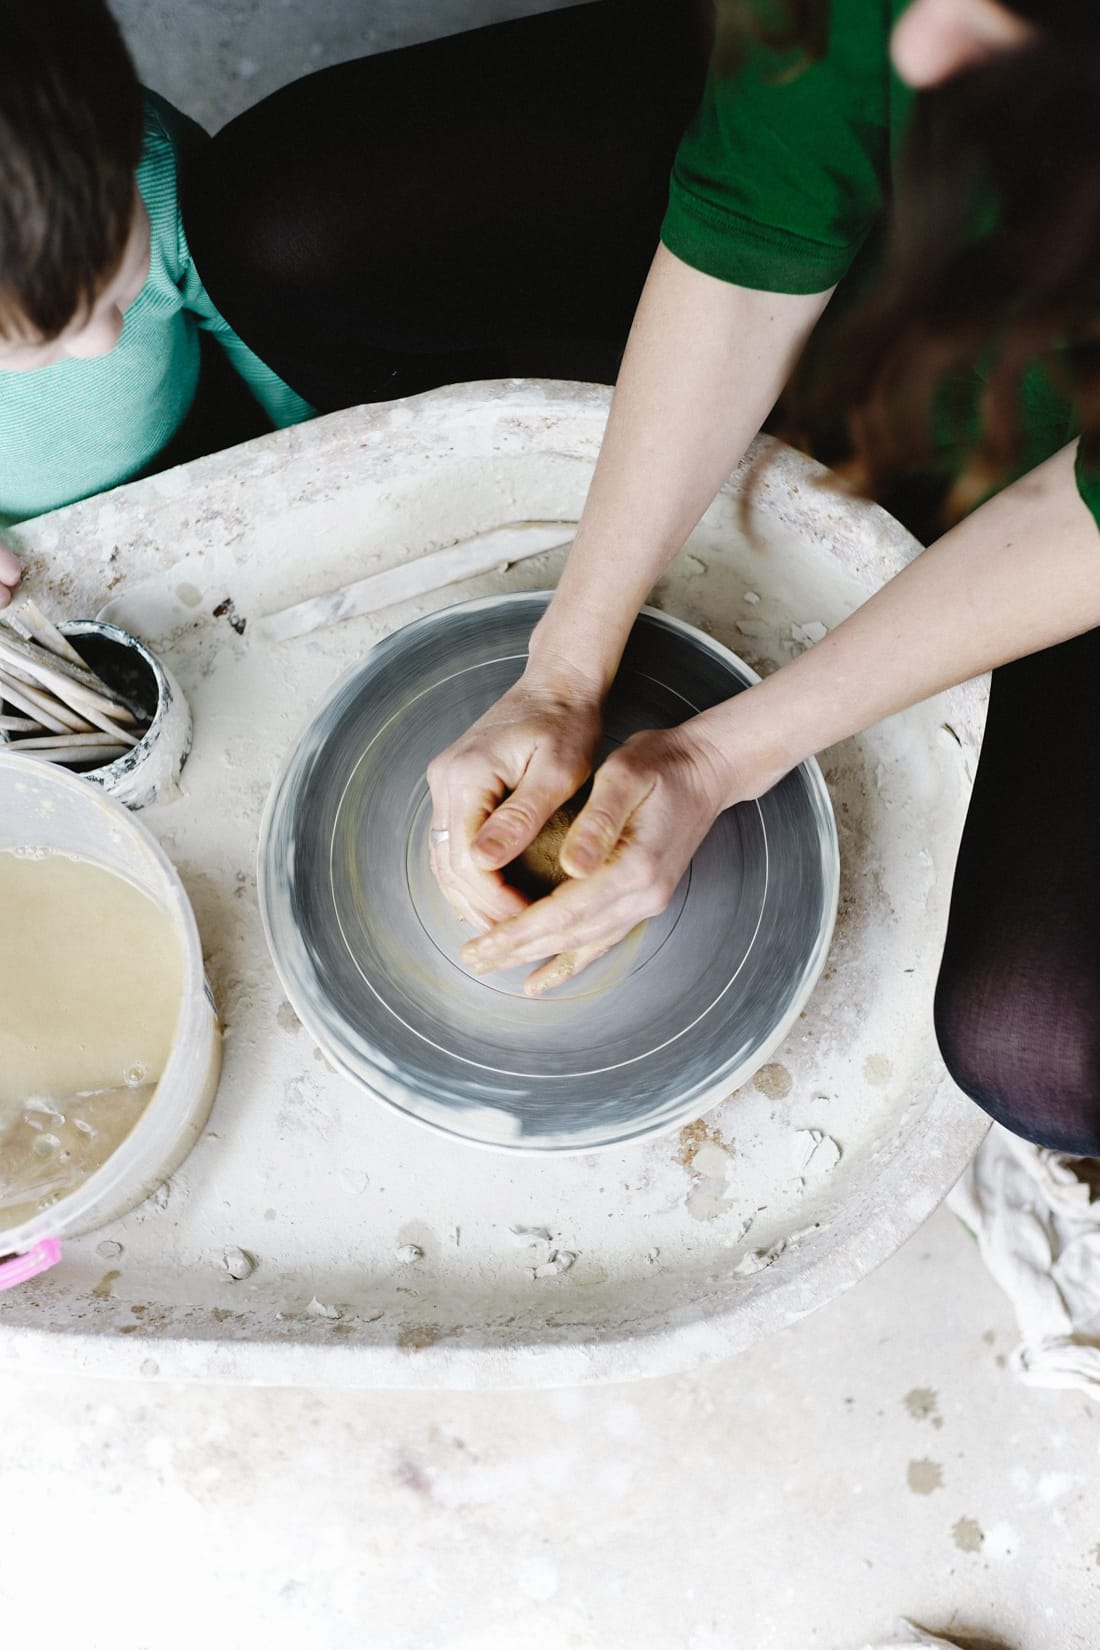 Designer Talks: Interview with Sonja from Sole Ceramics by Compendium Design Store. Photos by John Tan.